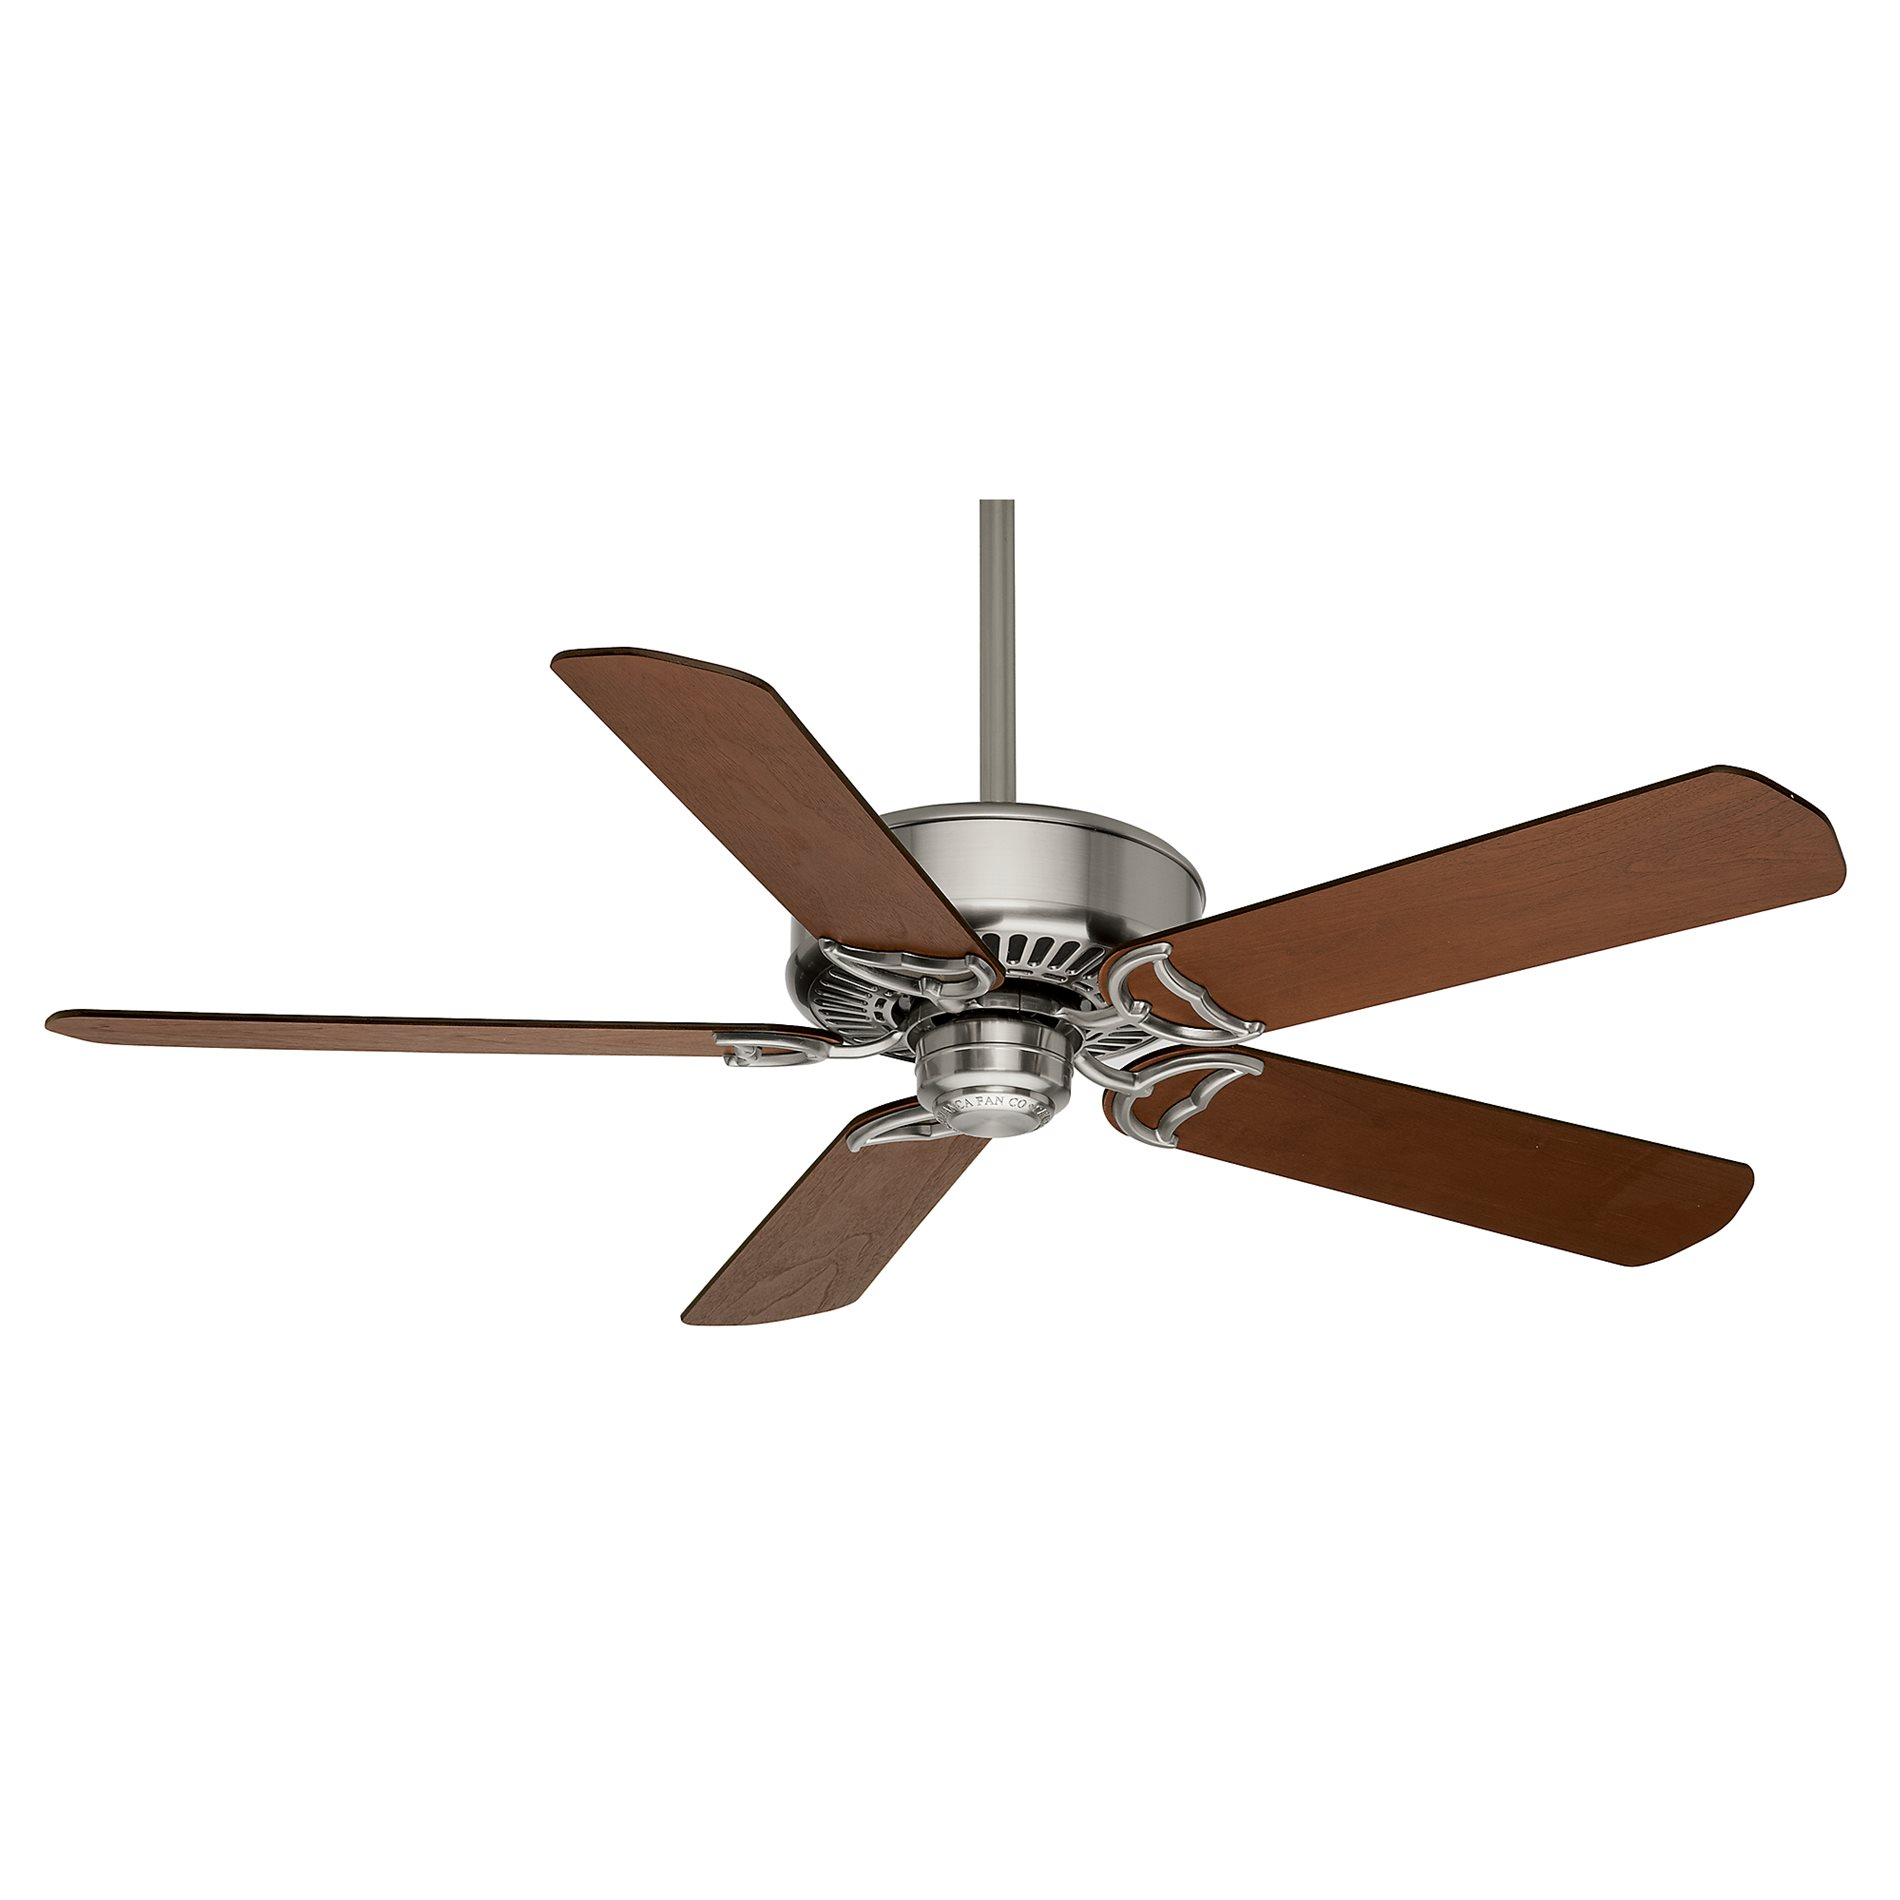 casablanca fans panama dc 54 brushed nickel ceiling fan